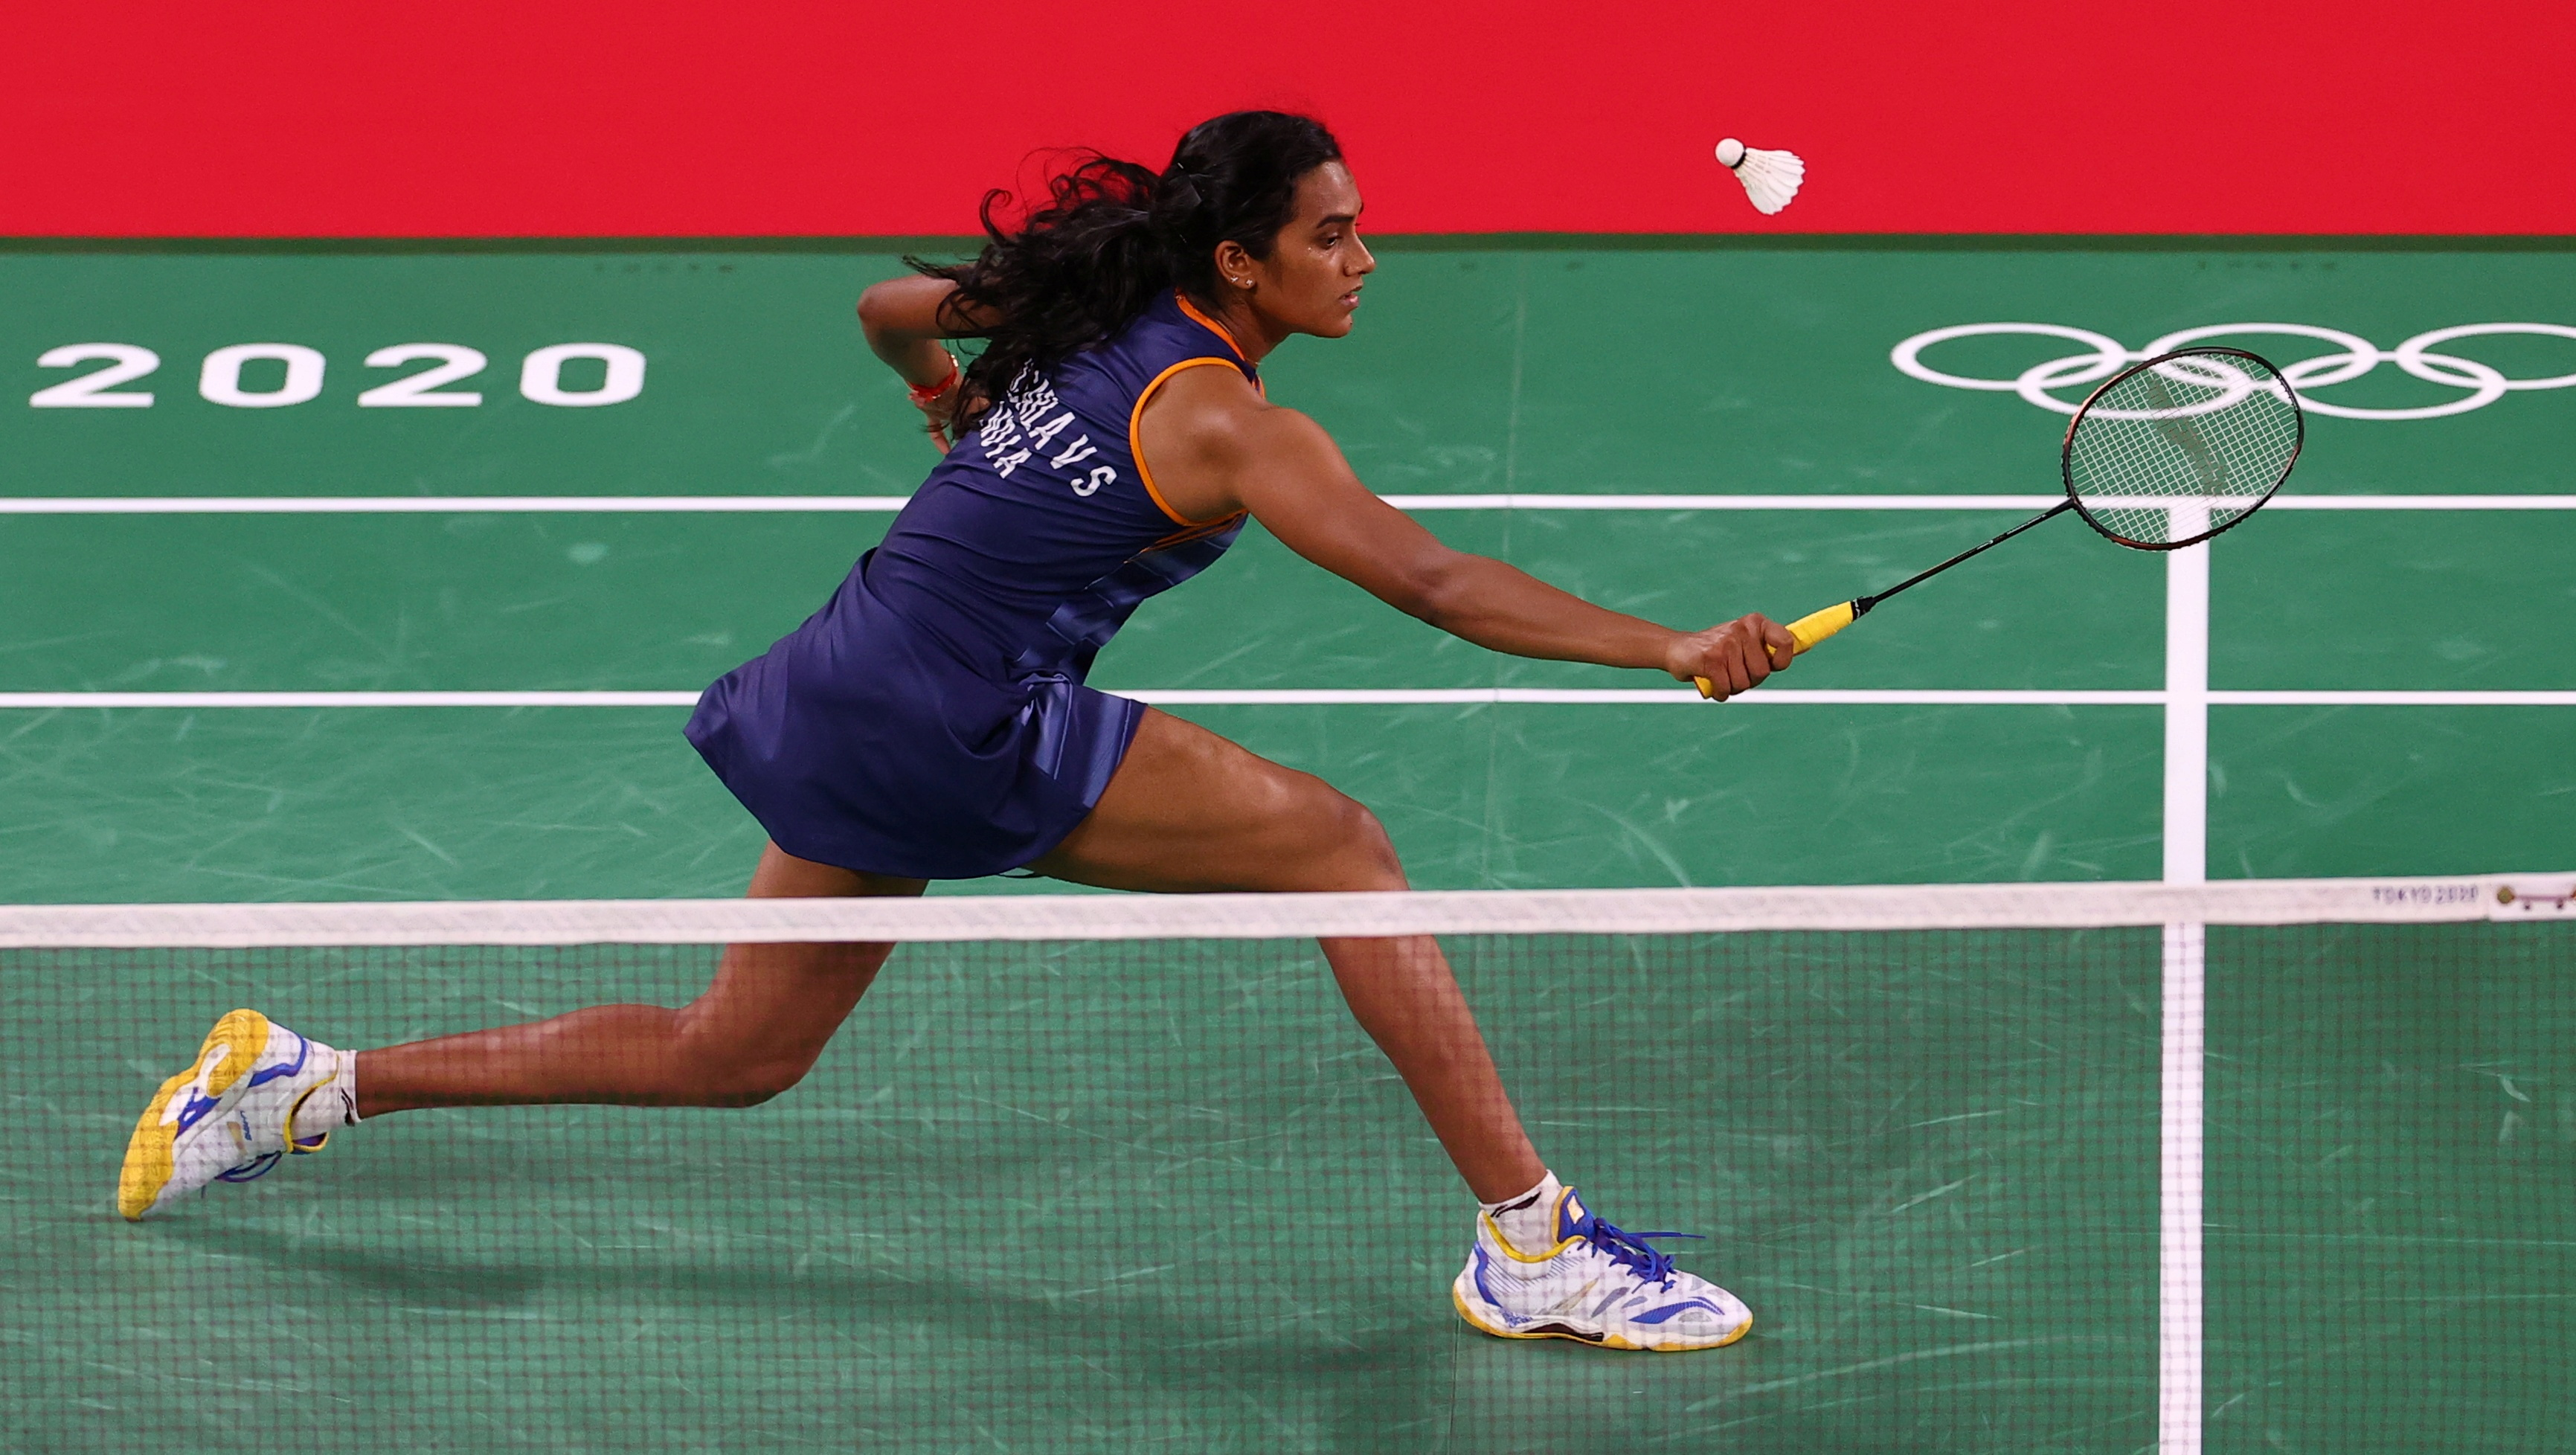 Tokyo 2020 Olympics - Badminton - Women's Singles - Group Stage - MFS - Musashino Forest Sport Plaza, Tokyo, Japan – July 25, 2021. P.V. Sindhu of India in action during the match against Ksenia Polikarpova of Israel. REUTERS/Leonhard Foeger/File Photo